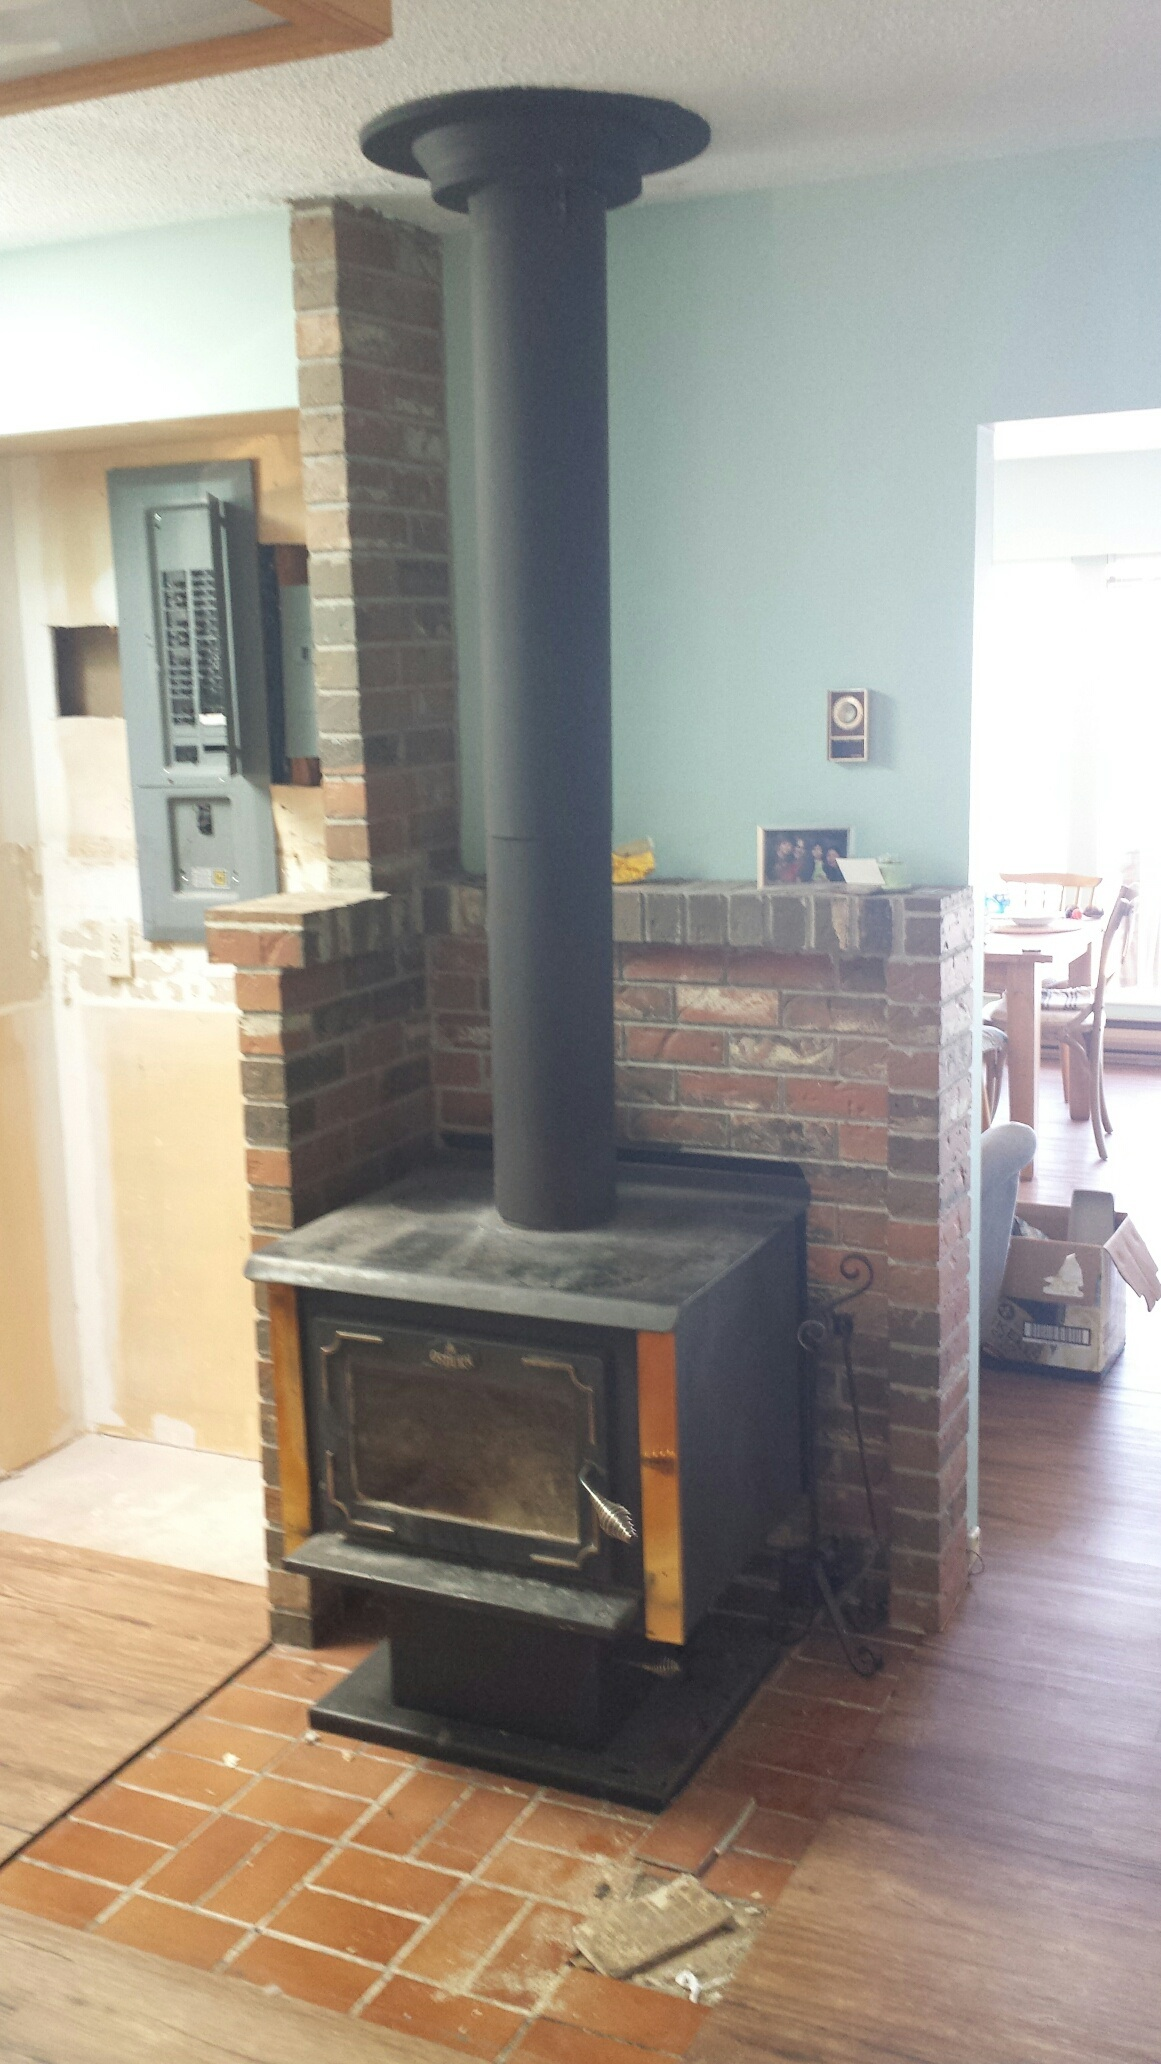 Wood stove heat shield reduces clearances by 66% - Adding Wood Stove Heat Shield Flue Guru